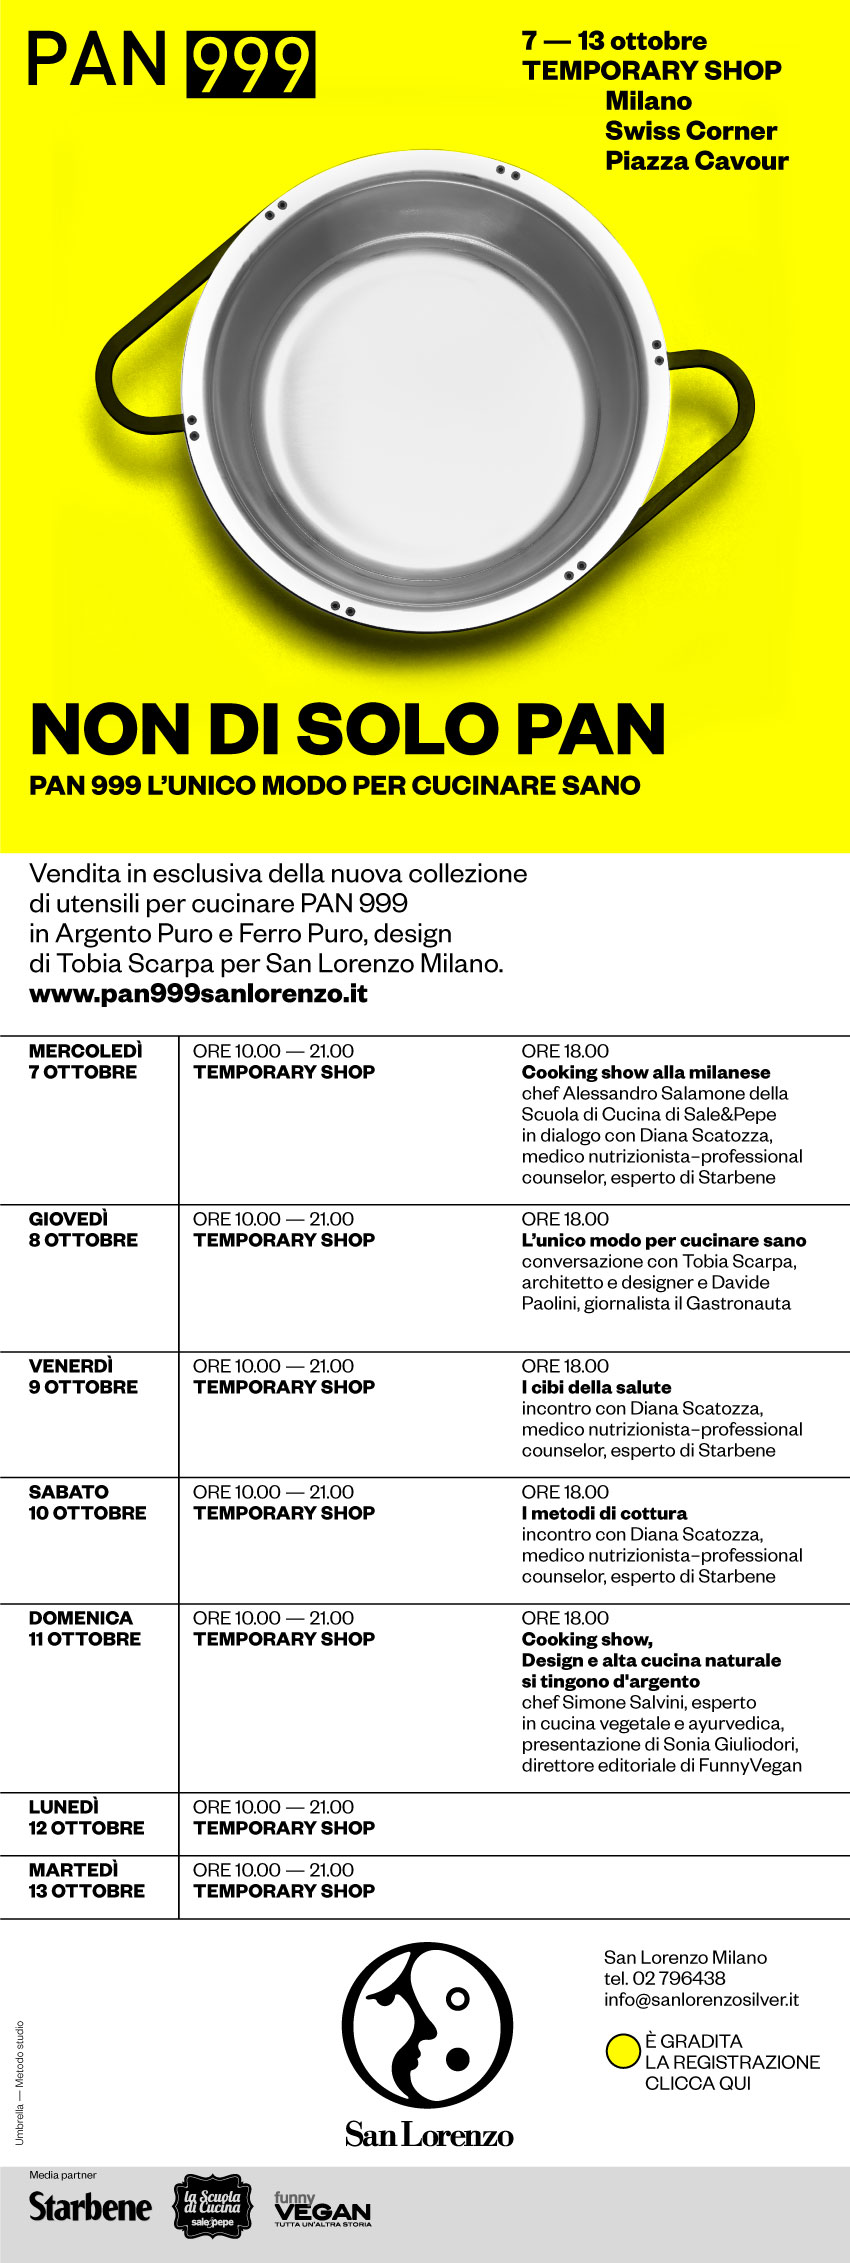 01_PAN999_GENERALE_ppdef4